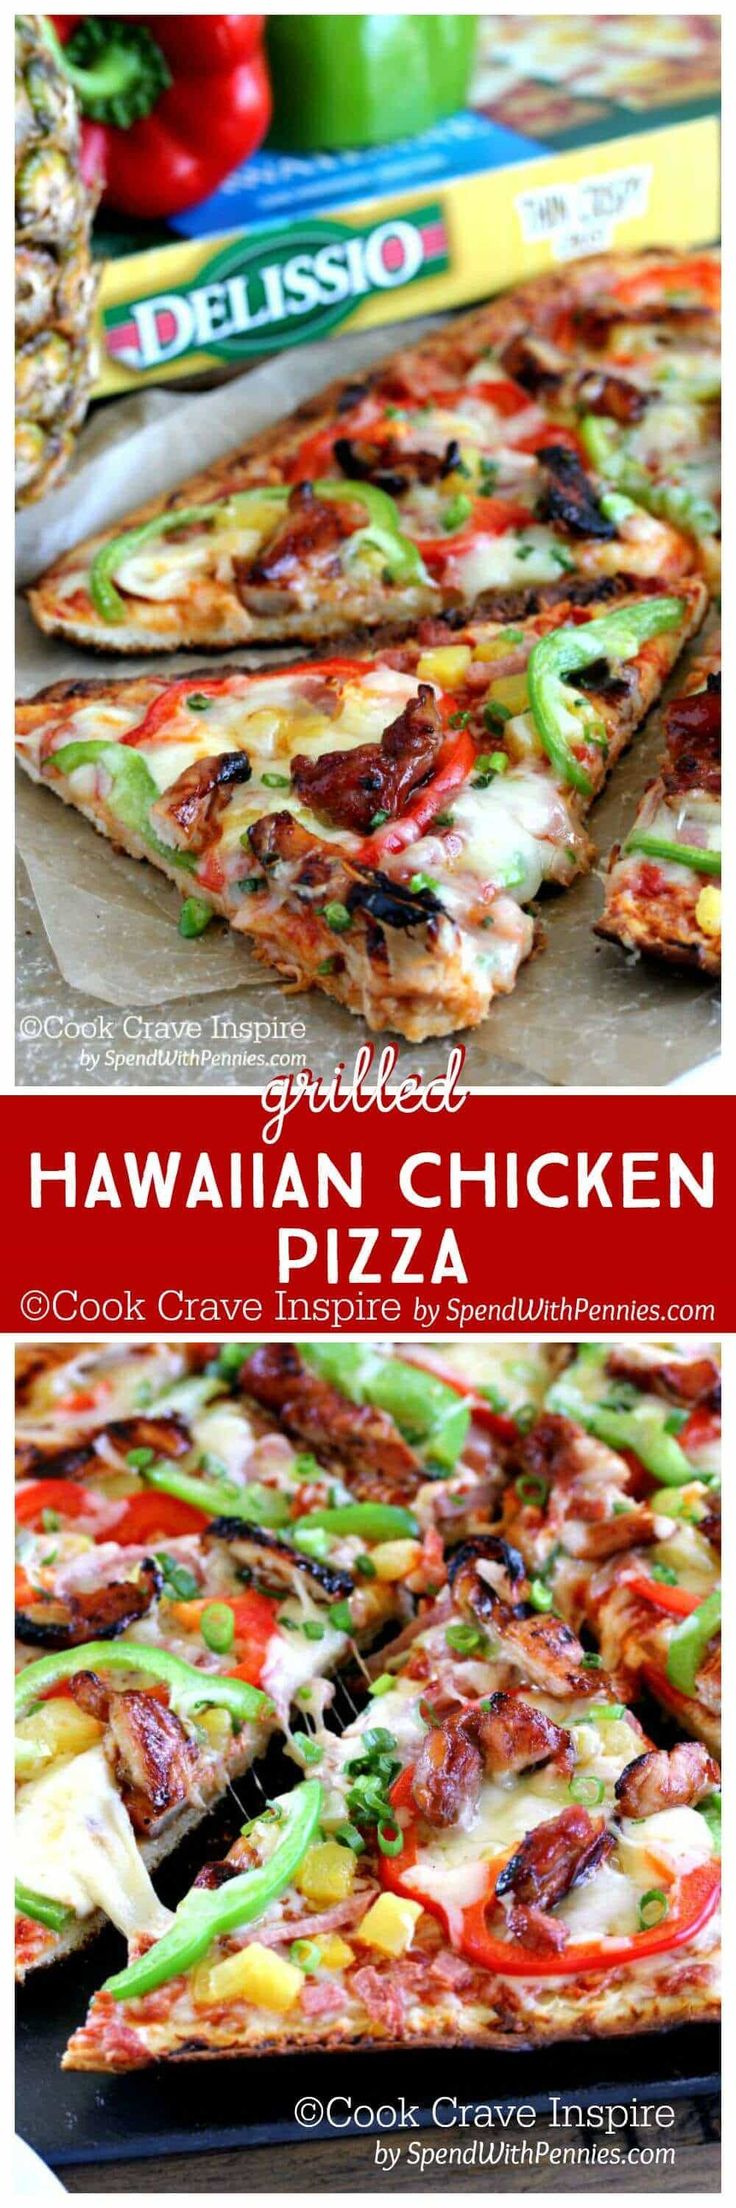 Hawaiian Chicken Grilled Pizza!  Total pizza perfection on the grill with ham and pineapple pizza topped with chicken & peppers! An easy appetizer or meal!